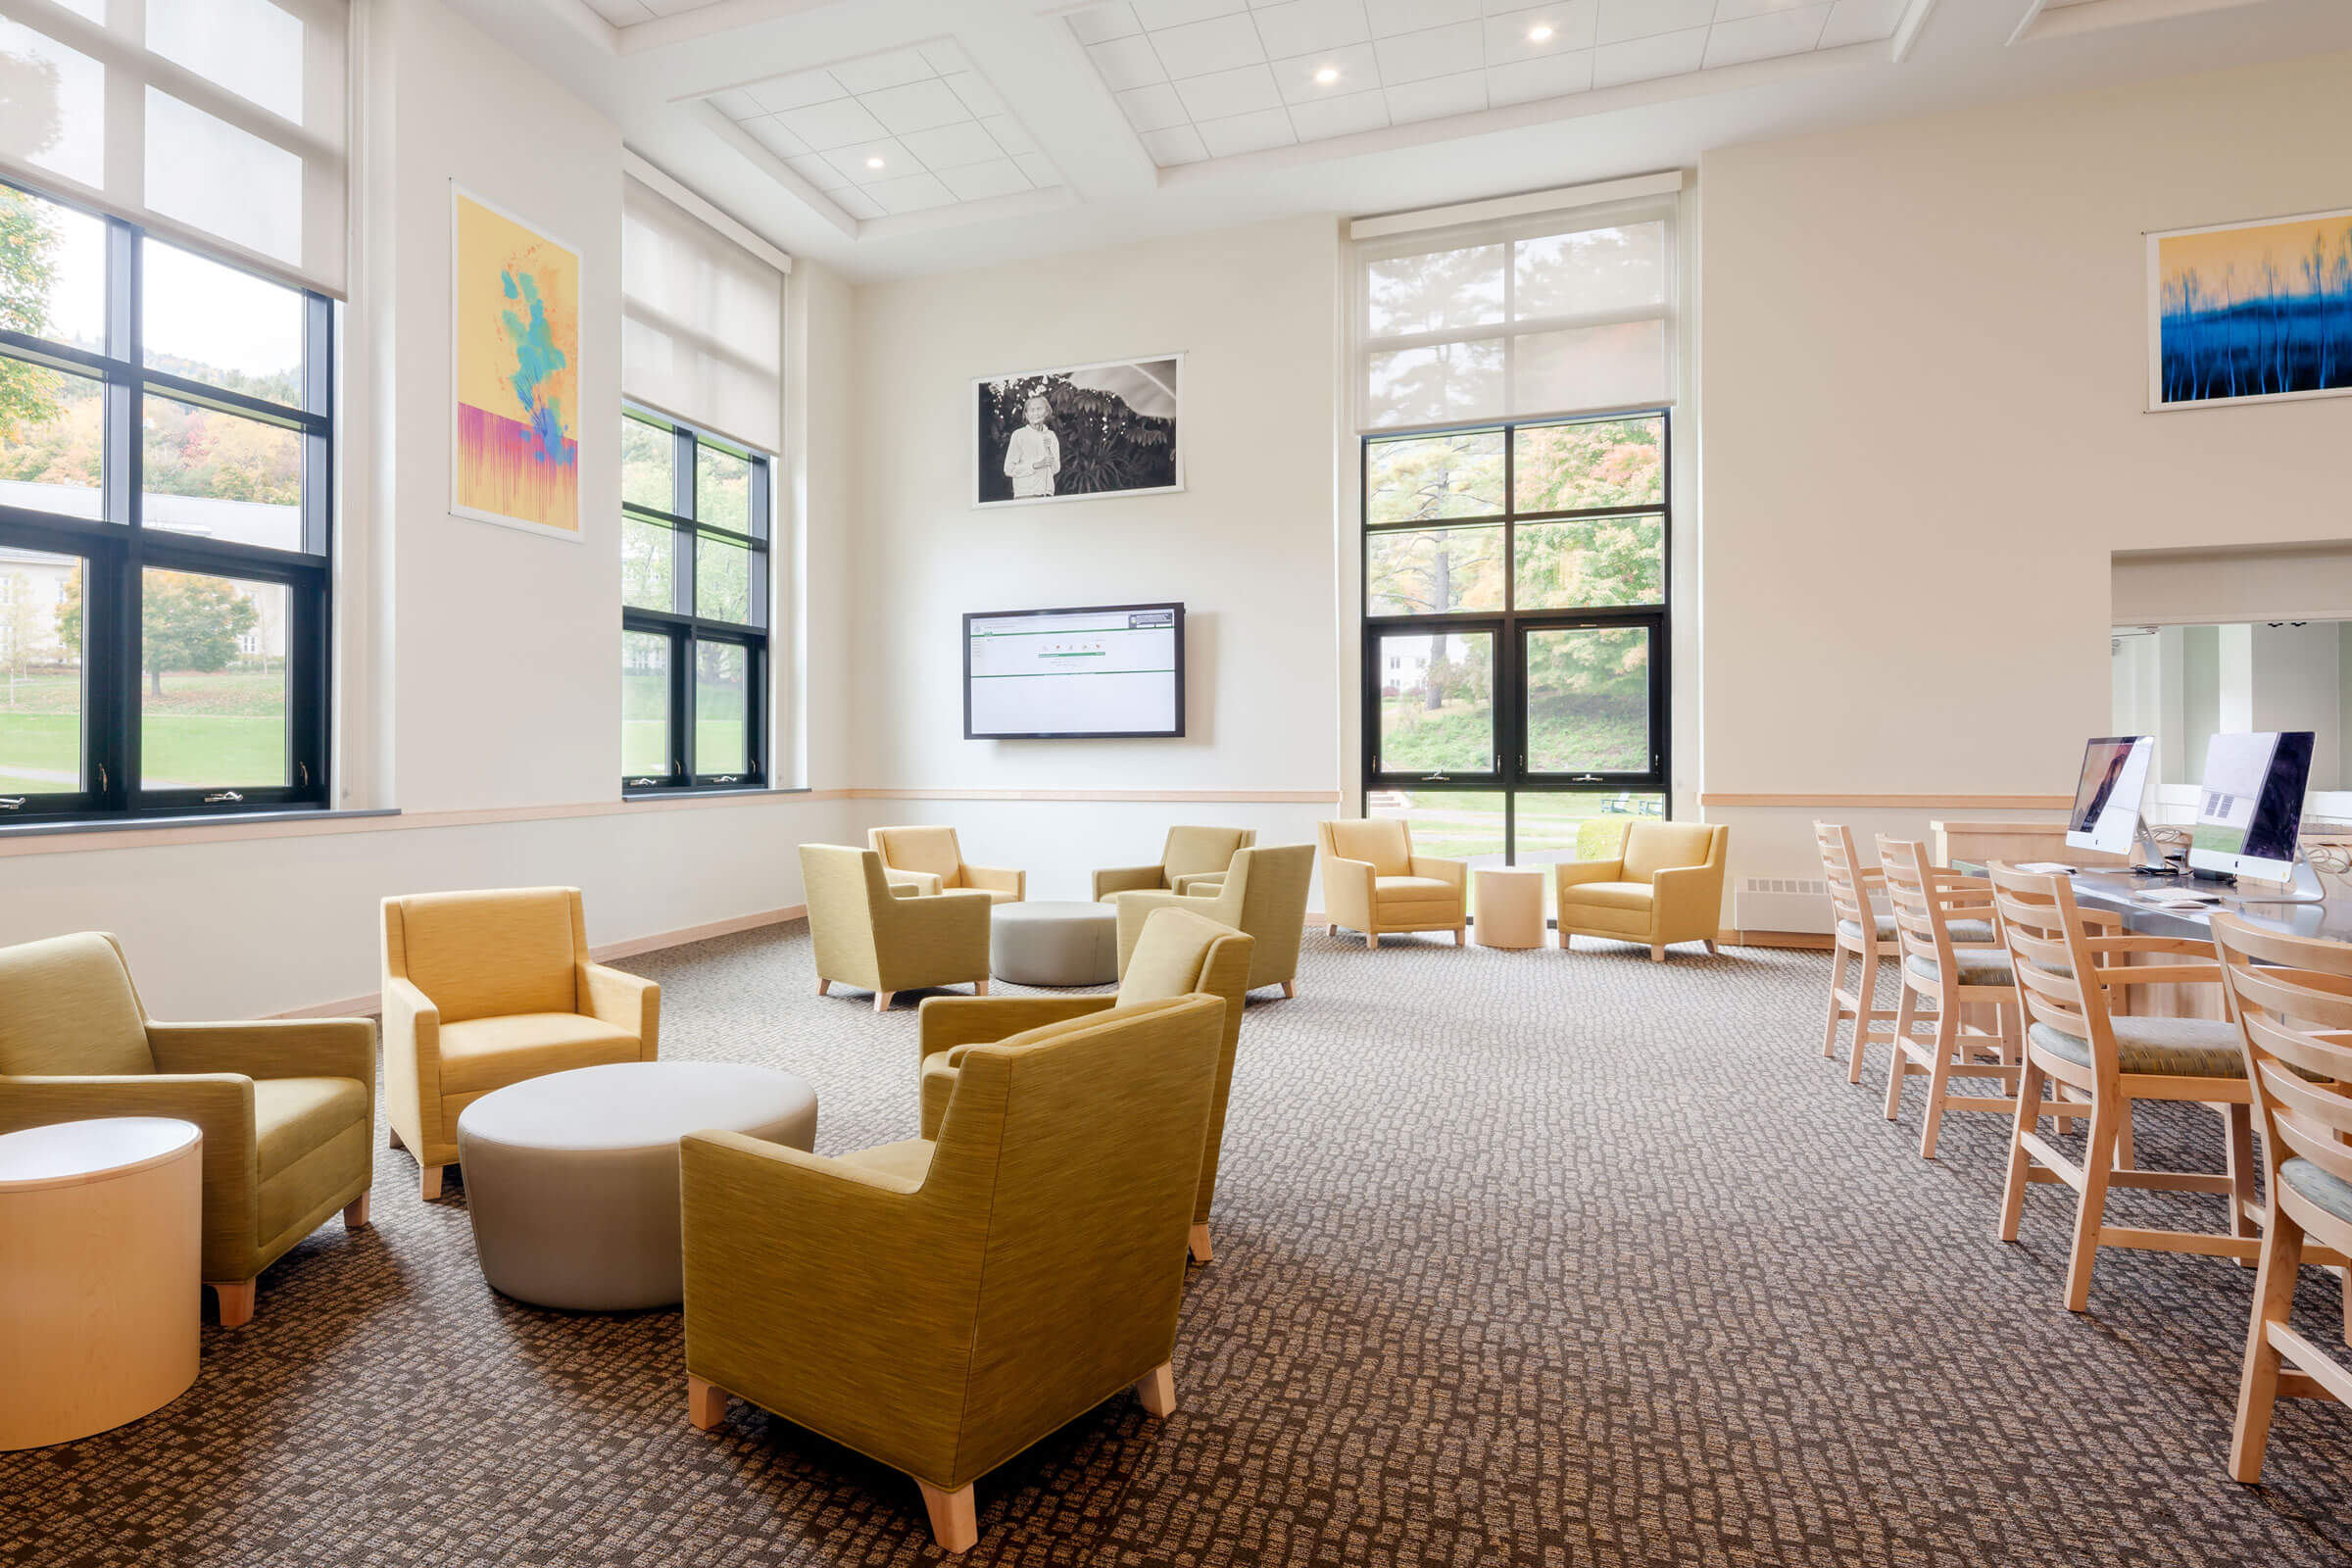 Interior view of Geier Library at Berkshire School, showing soft seating and also new windows installed during the building's renovation